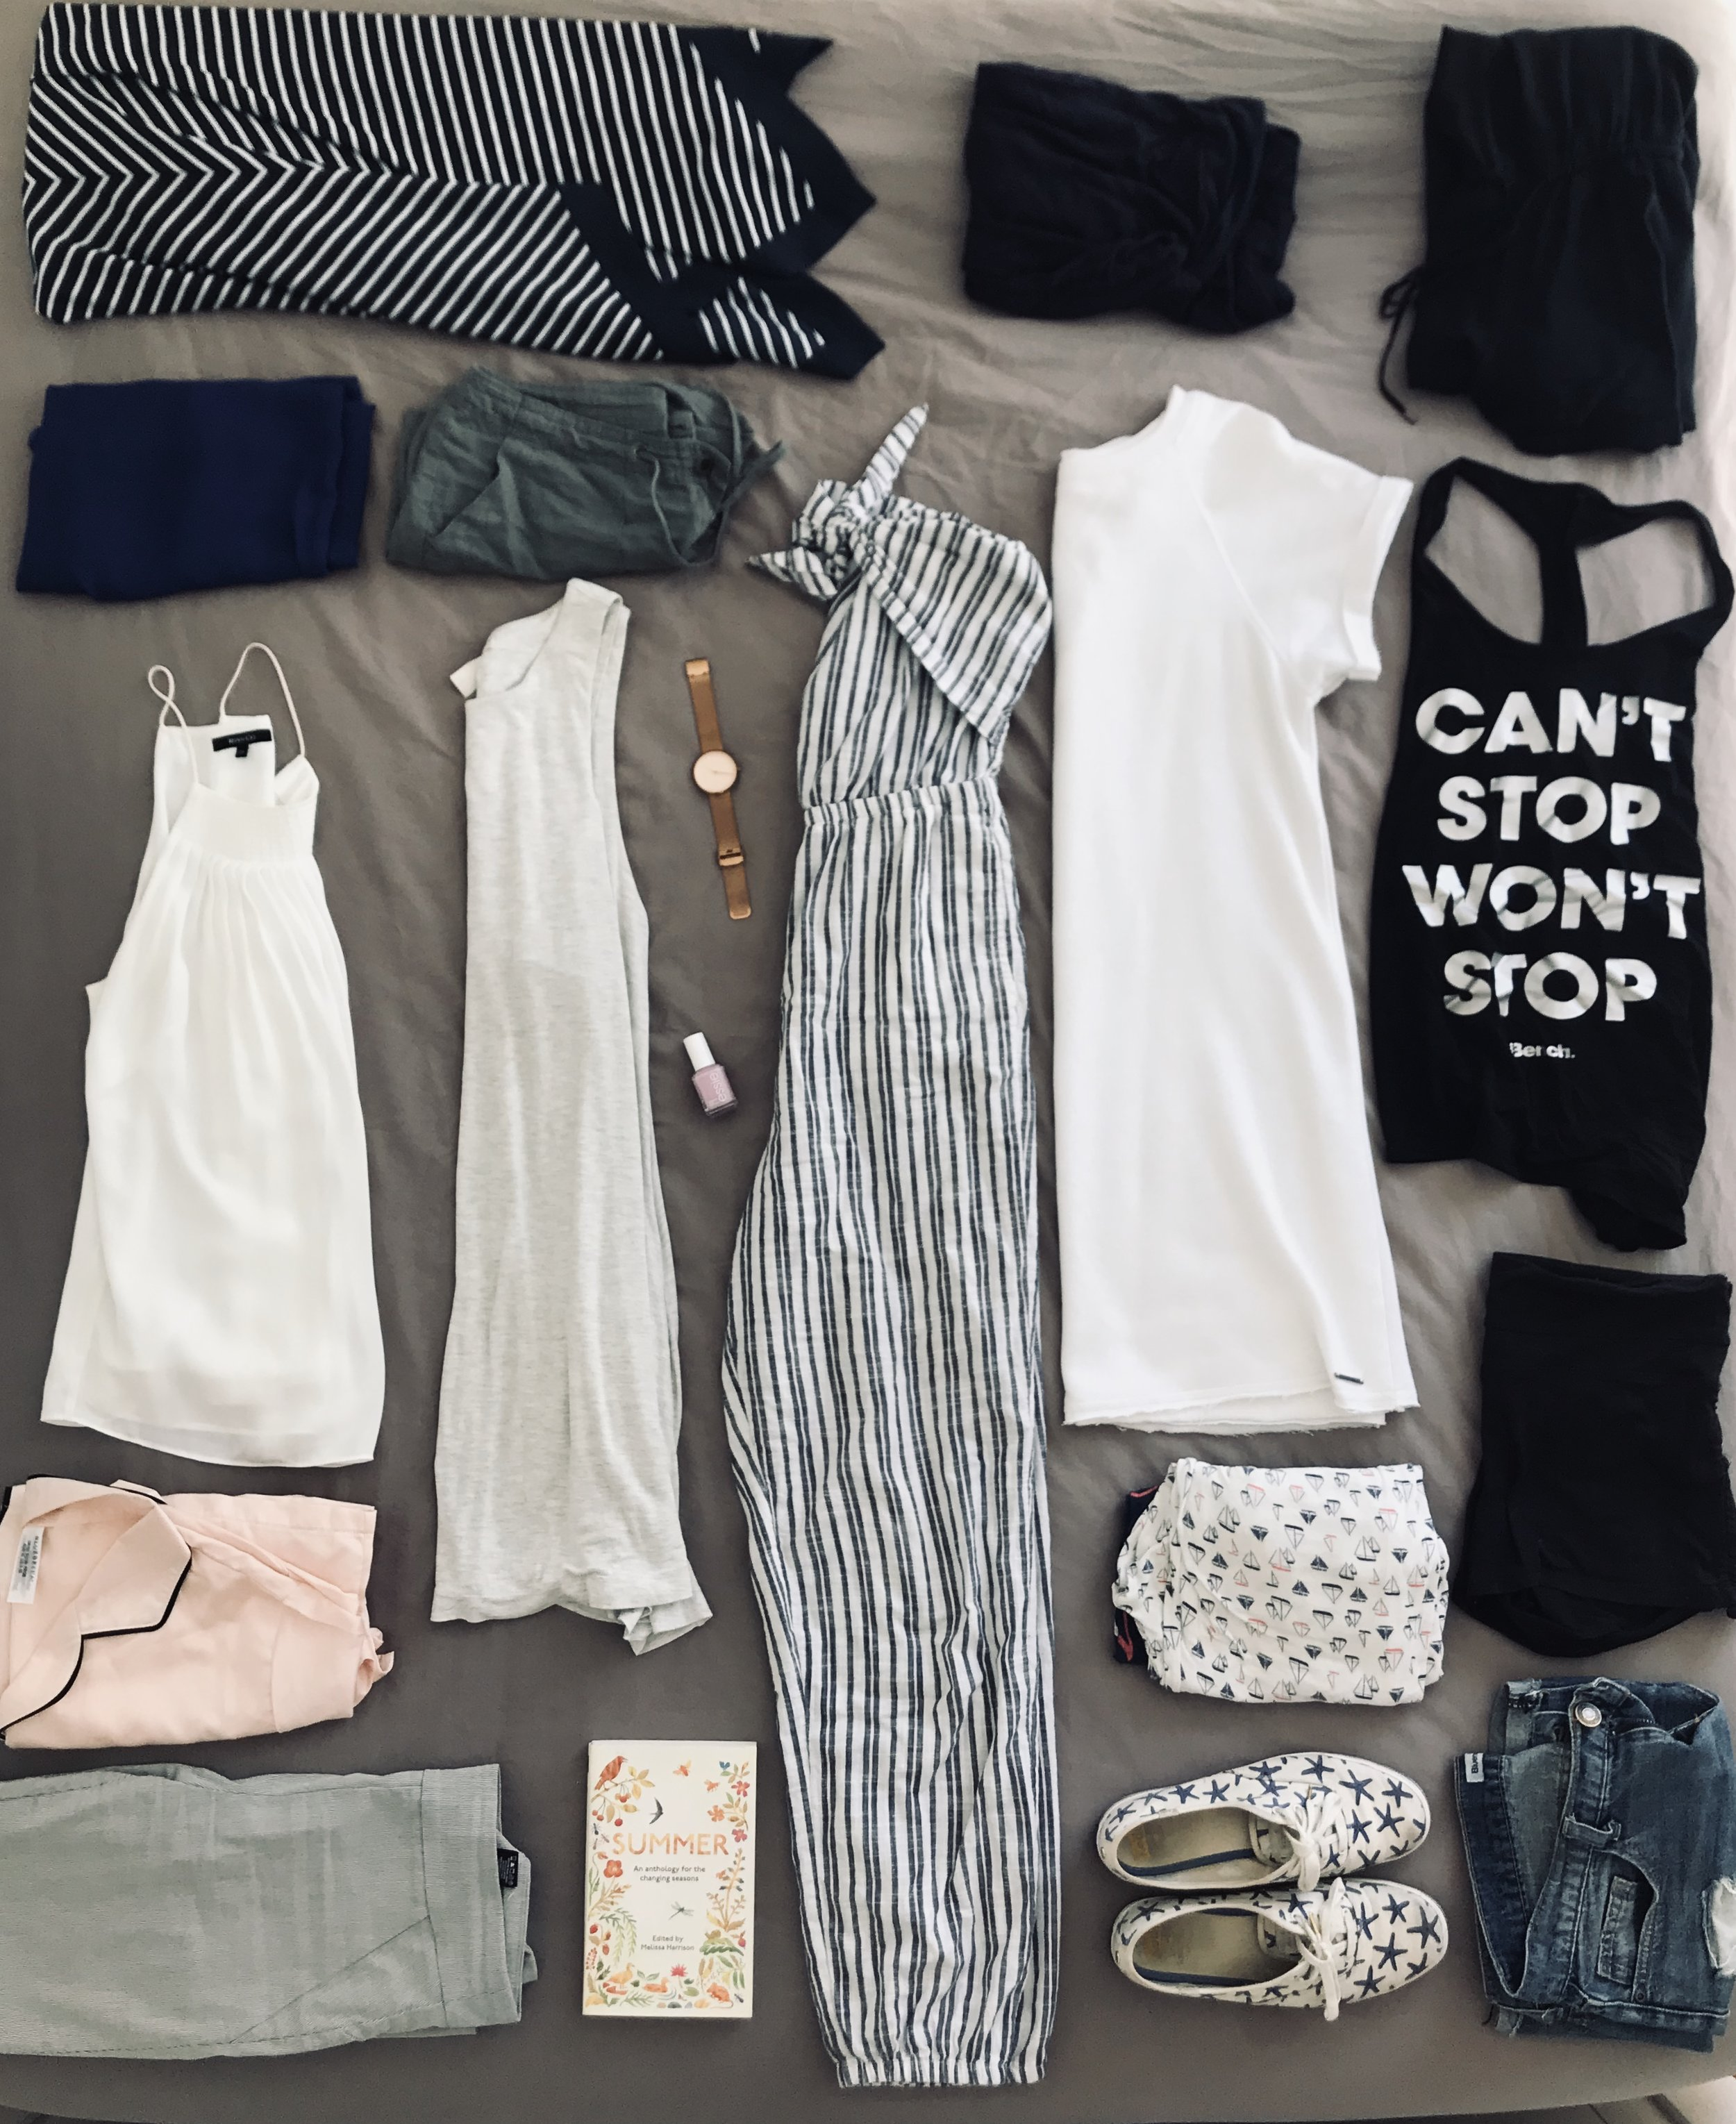 Top Centre - Clockwise: Navy Blue Tank     | RW&Co,   Black Romper   | The Gap,   Can't Stop Won't Stop Tank   | Bench,   White T Shirt Dress   | La Vie En Rose,   Sailboat Pyjamas  |  La Vie En Rose,     Black Shorts  | Winners,  Jean Shorts   | Bluenotes,   Starfish KEDS   | Softmoc,   Blue/White Romper   | Aerie  , Rose Gold Watch   | Fossil,   Essie Nail Polish  | Shoppers Drug Mart,  White/Grey Dress   | H&M,   Summer Anthology   | Amazon,   White/Grey Pin Strip Pants   | RW&Co,   Pink Silk Pyjamas   | ASOS,   White Silk Tank   | RW&Co,   Blue Silk Tank   | ModCloth,   Green Shorts   | The Gap,   Blue/White Striped Dress   | Banana Republic